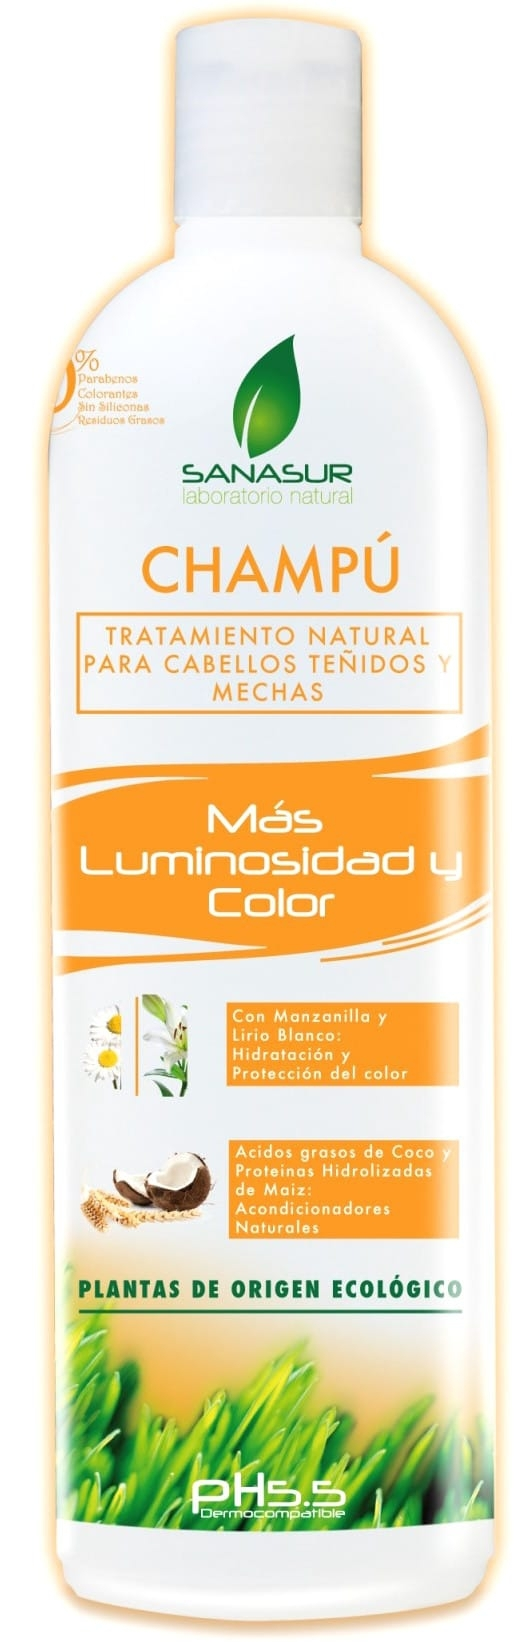 Sanasur Champú Natural Luminosidad y Color 500ml